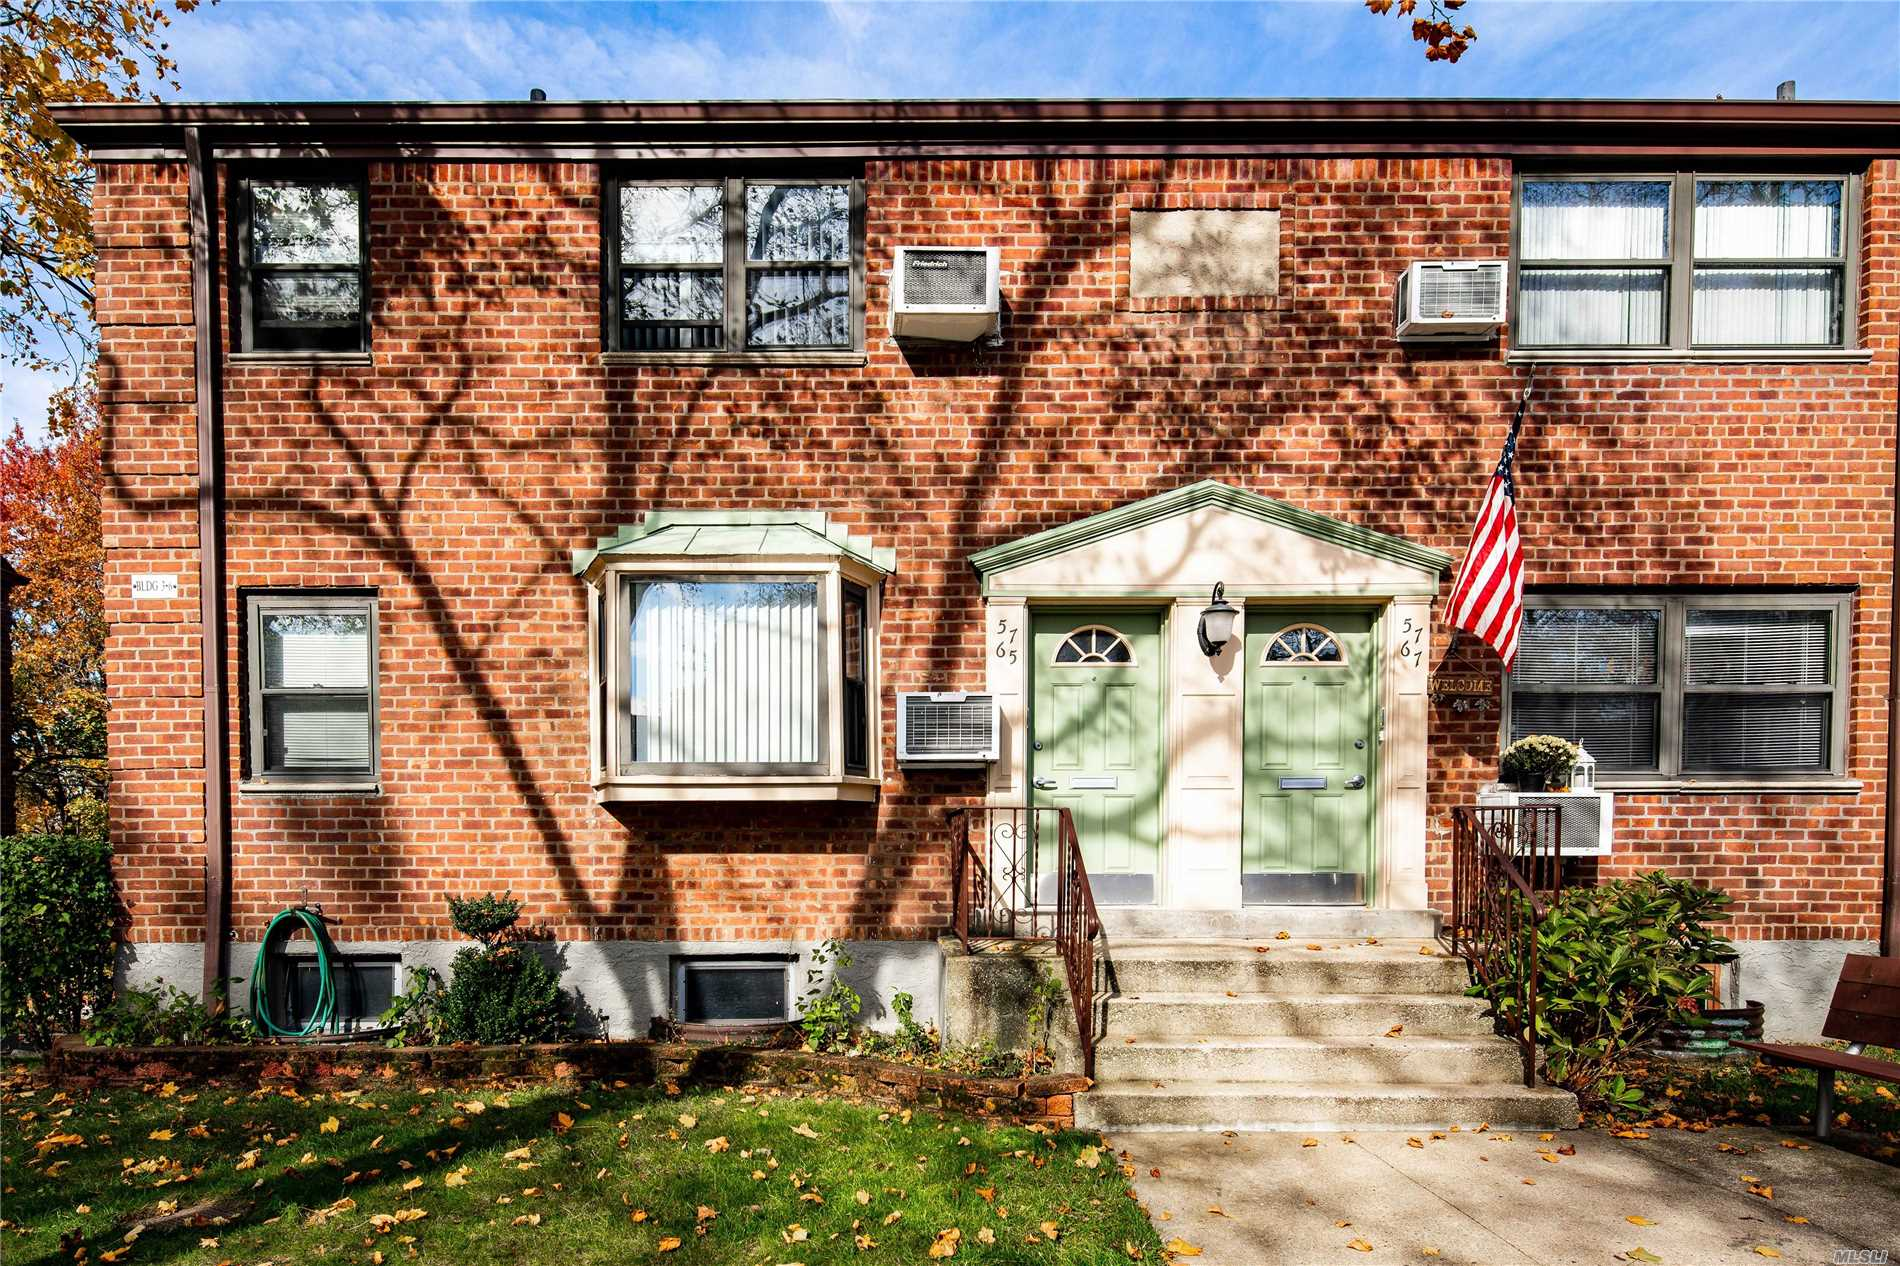 1 Bedroom 1 Bathroom Corner Unit On Tree Lined Street. Light Streams In Through Northern, Southern, And Western Facing Windows. L Shaped Living Room And Dining Room, Spacious Bedroom, And Full Bathroom. Stand Up Attic For Additional Storage. Maintenance Includes All Utilities. Seconds Away From The Expressway, And Close To Dining, Shopping, And Lirr